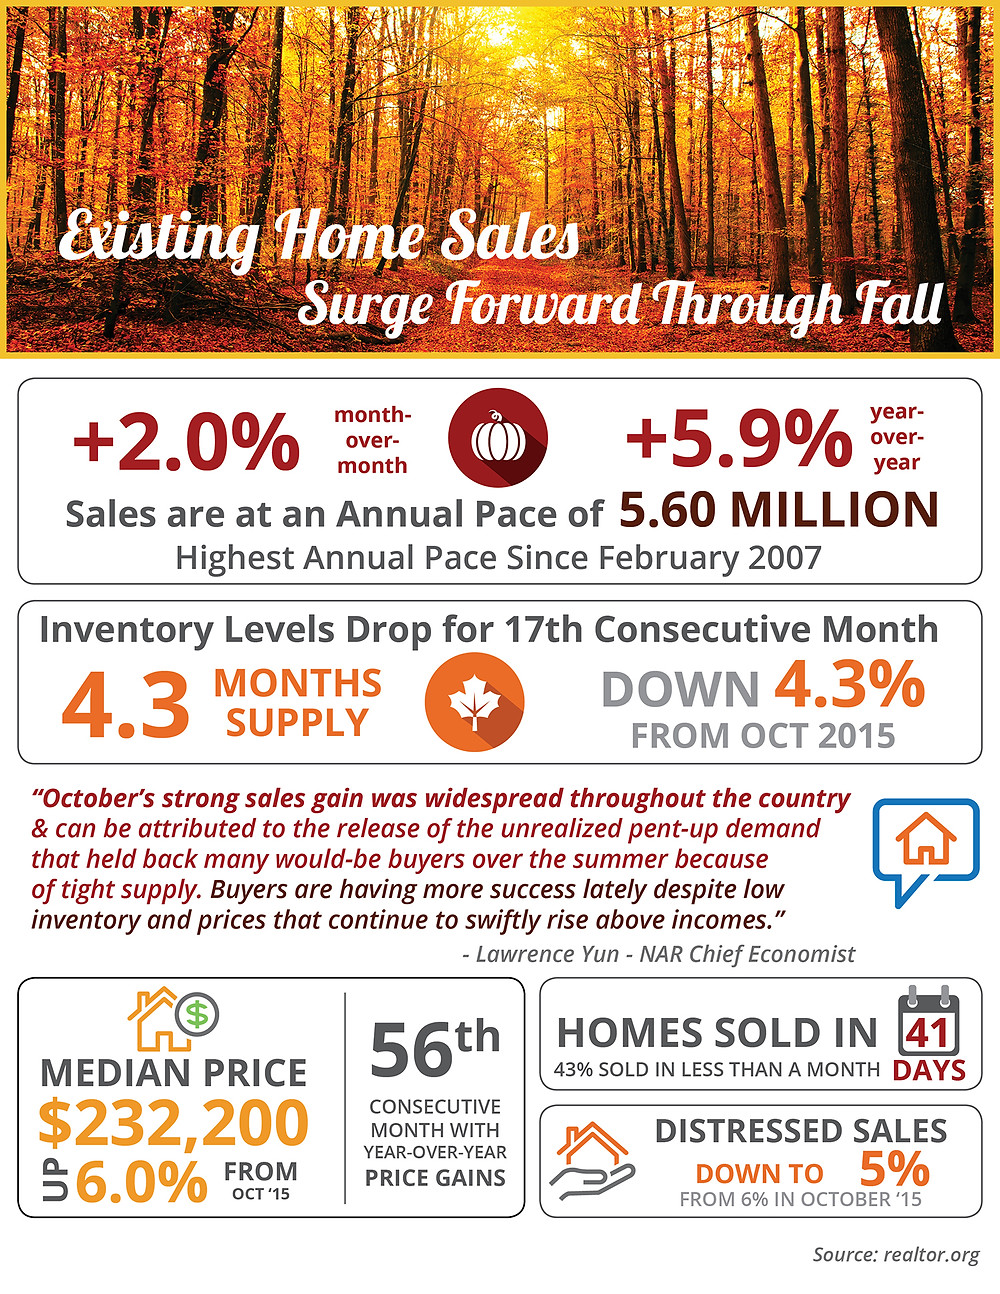 Existing Home Sales Surge Forward Through Fall [INFOGRAPHIC]   Simplifying The Market